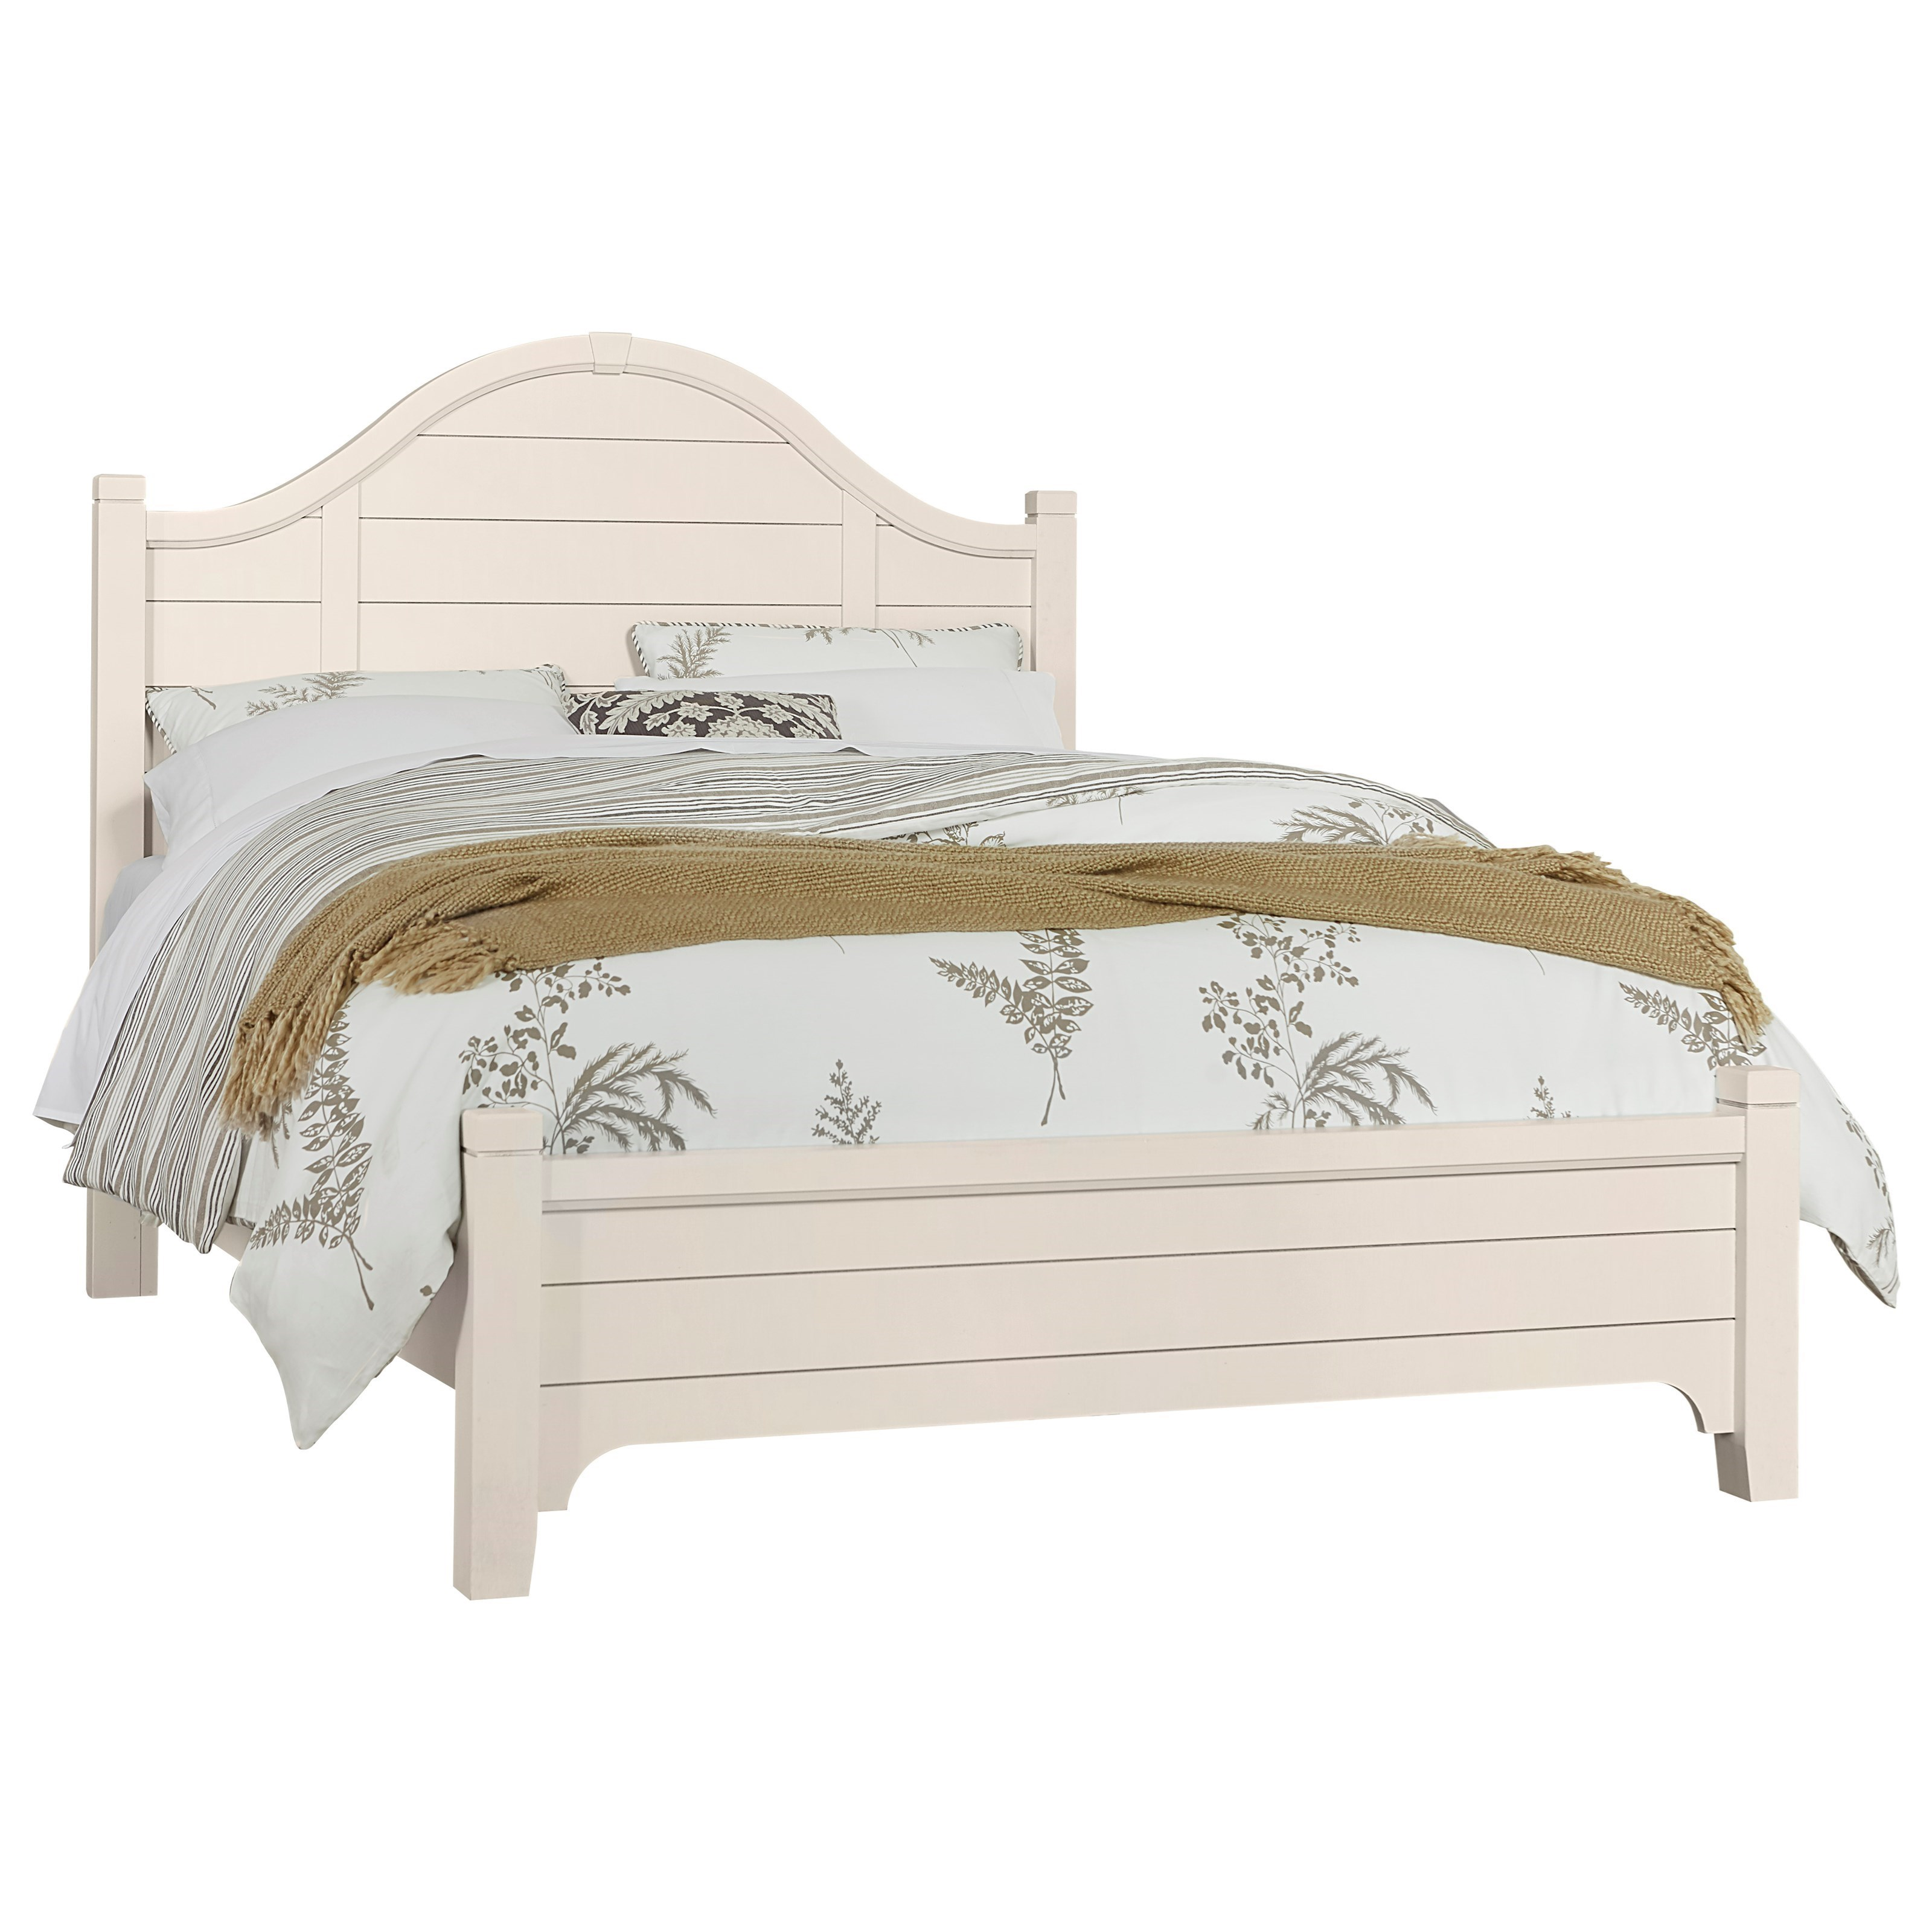 Bungalow King Arch Bed with Low Profile Footboard by Vaughan-Bassett at Crowley Furniture & Mattress